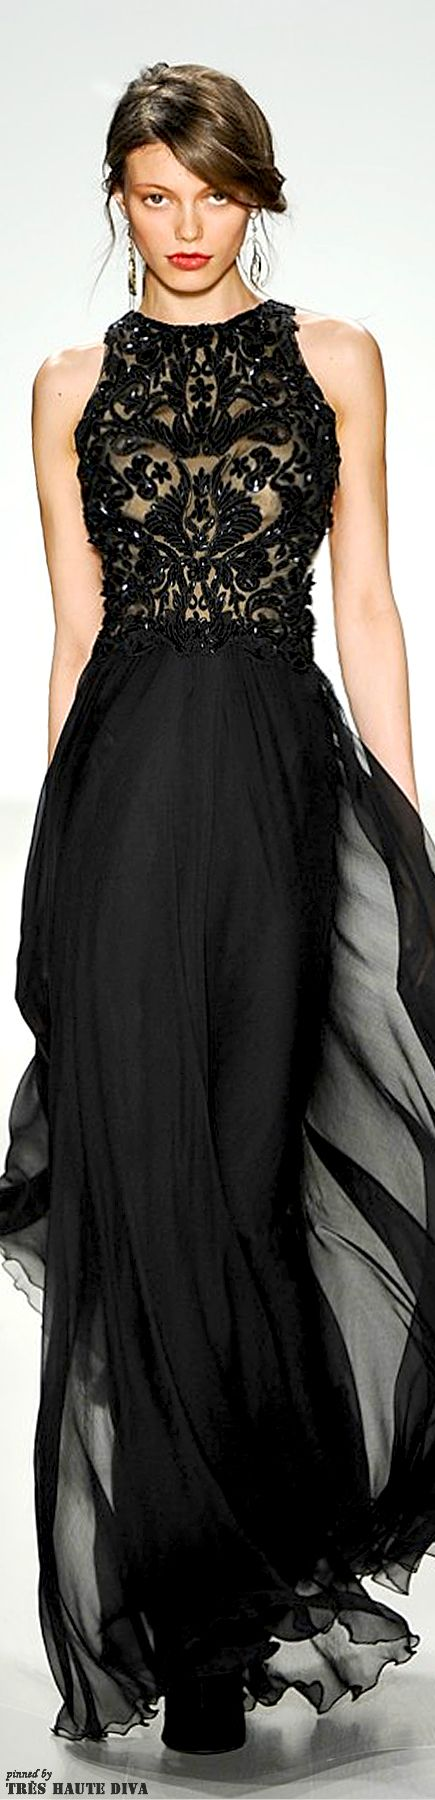 Tadashi Shoji Fall/Winter 2014 RTW black lace evening gown: